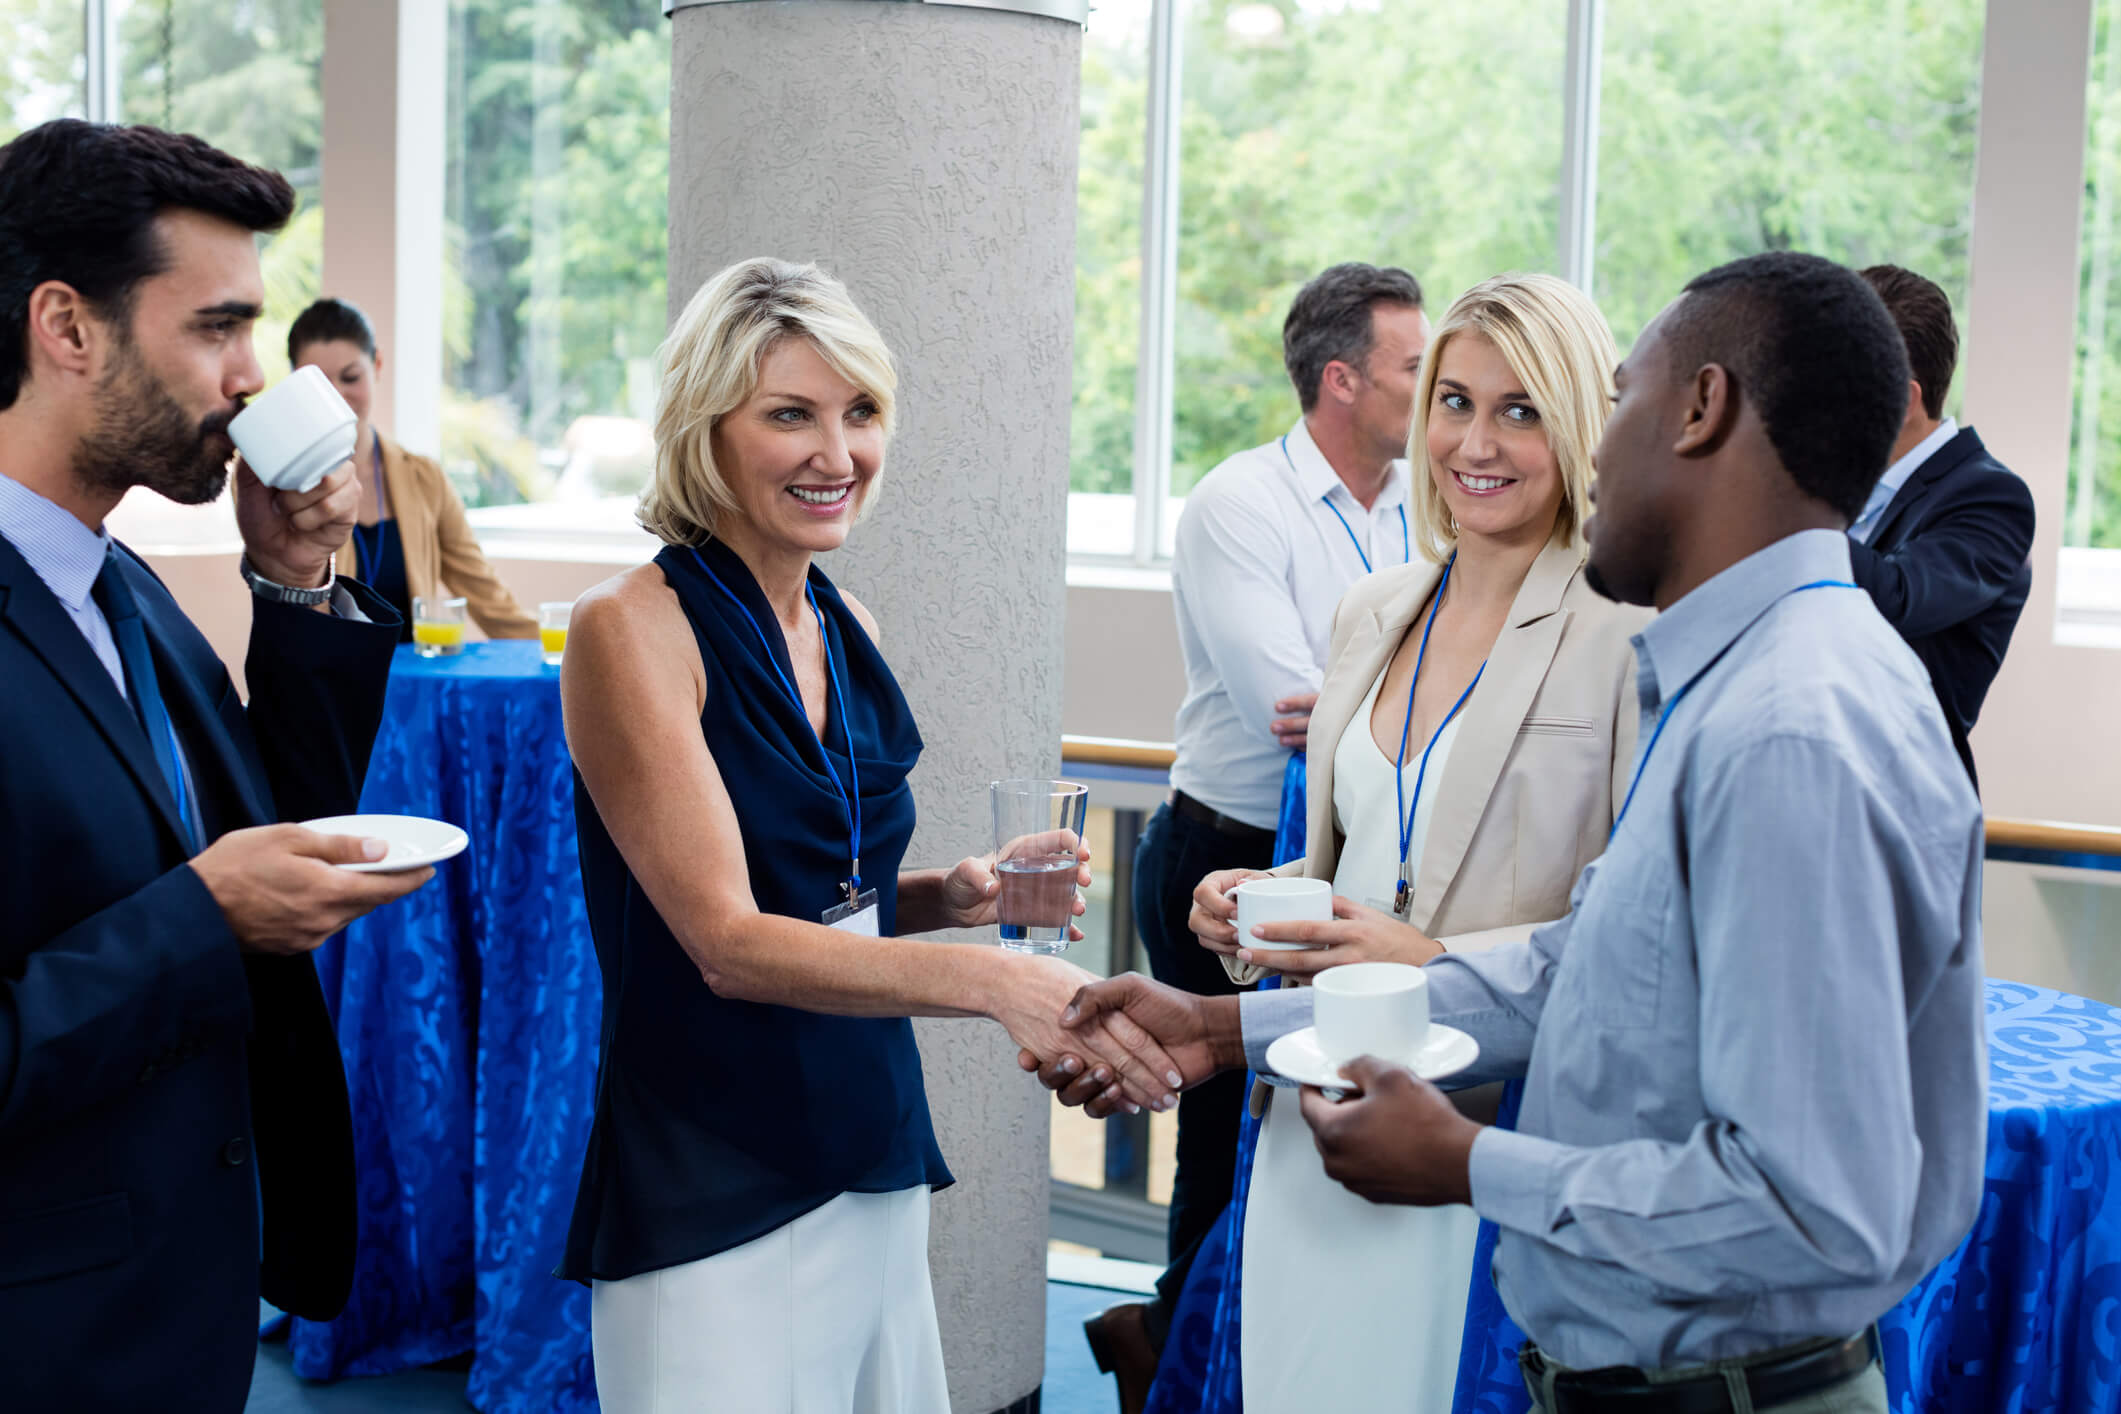 4 tips to maximize your next association networking event